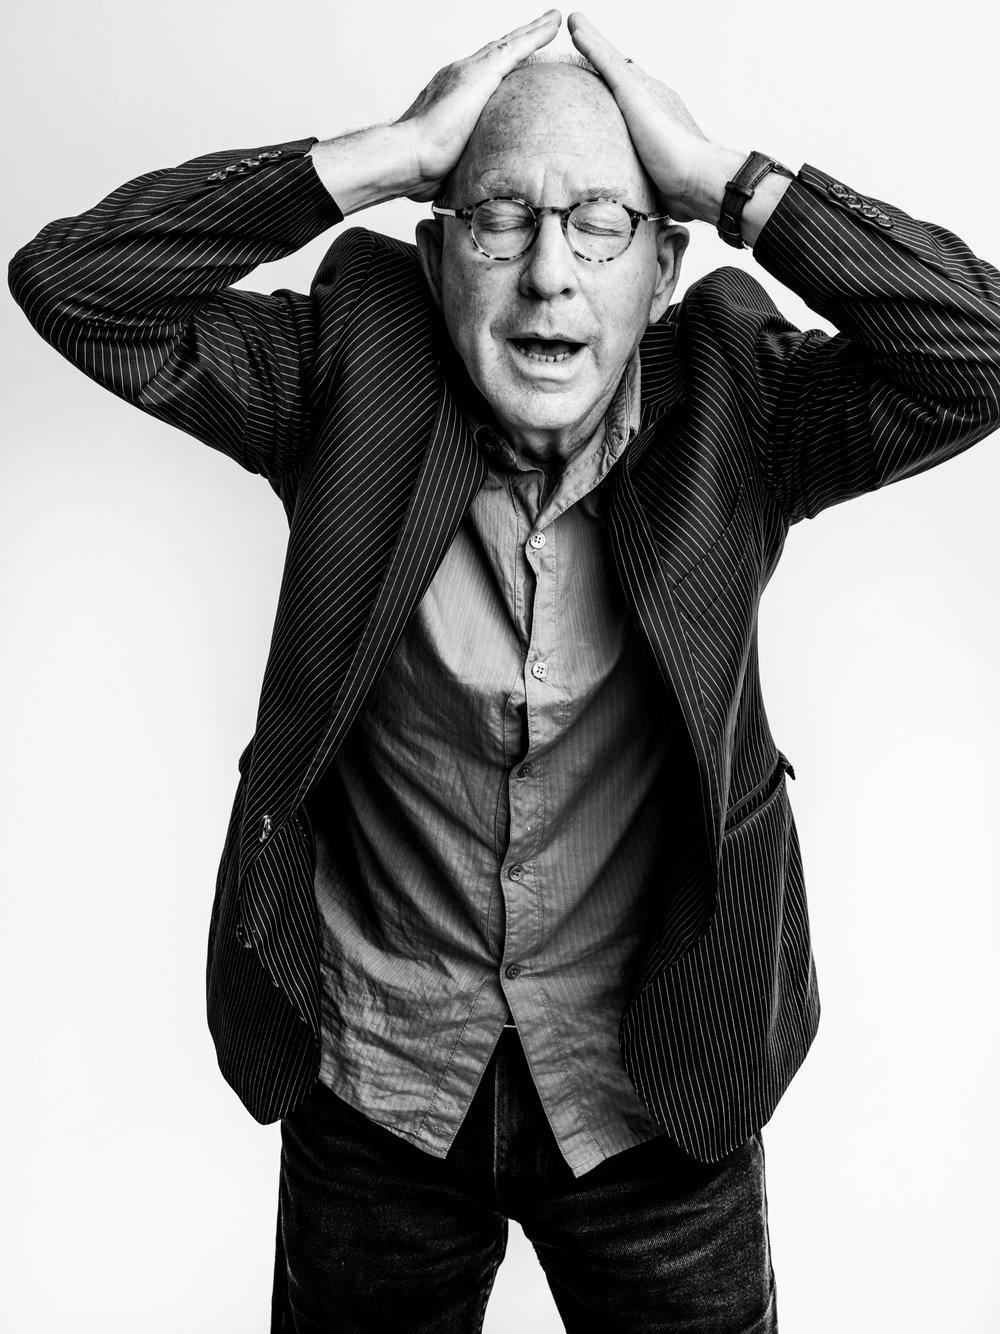 JERRY SALTZ | ART CRITIC